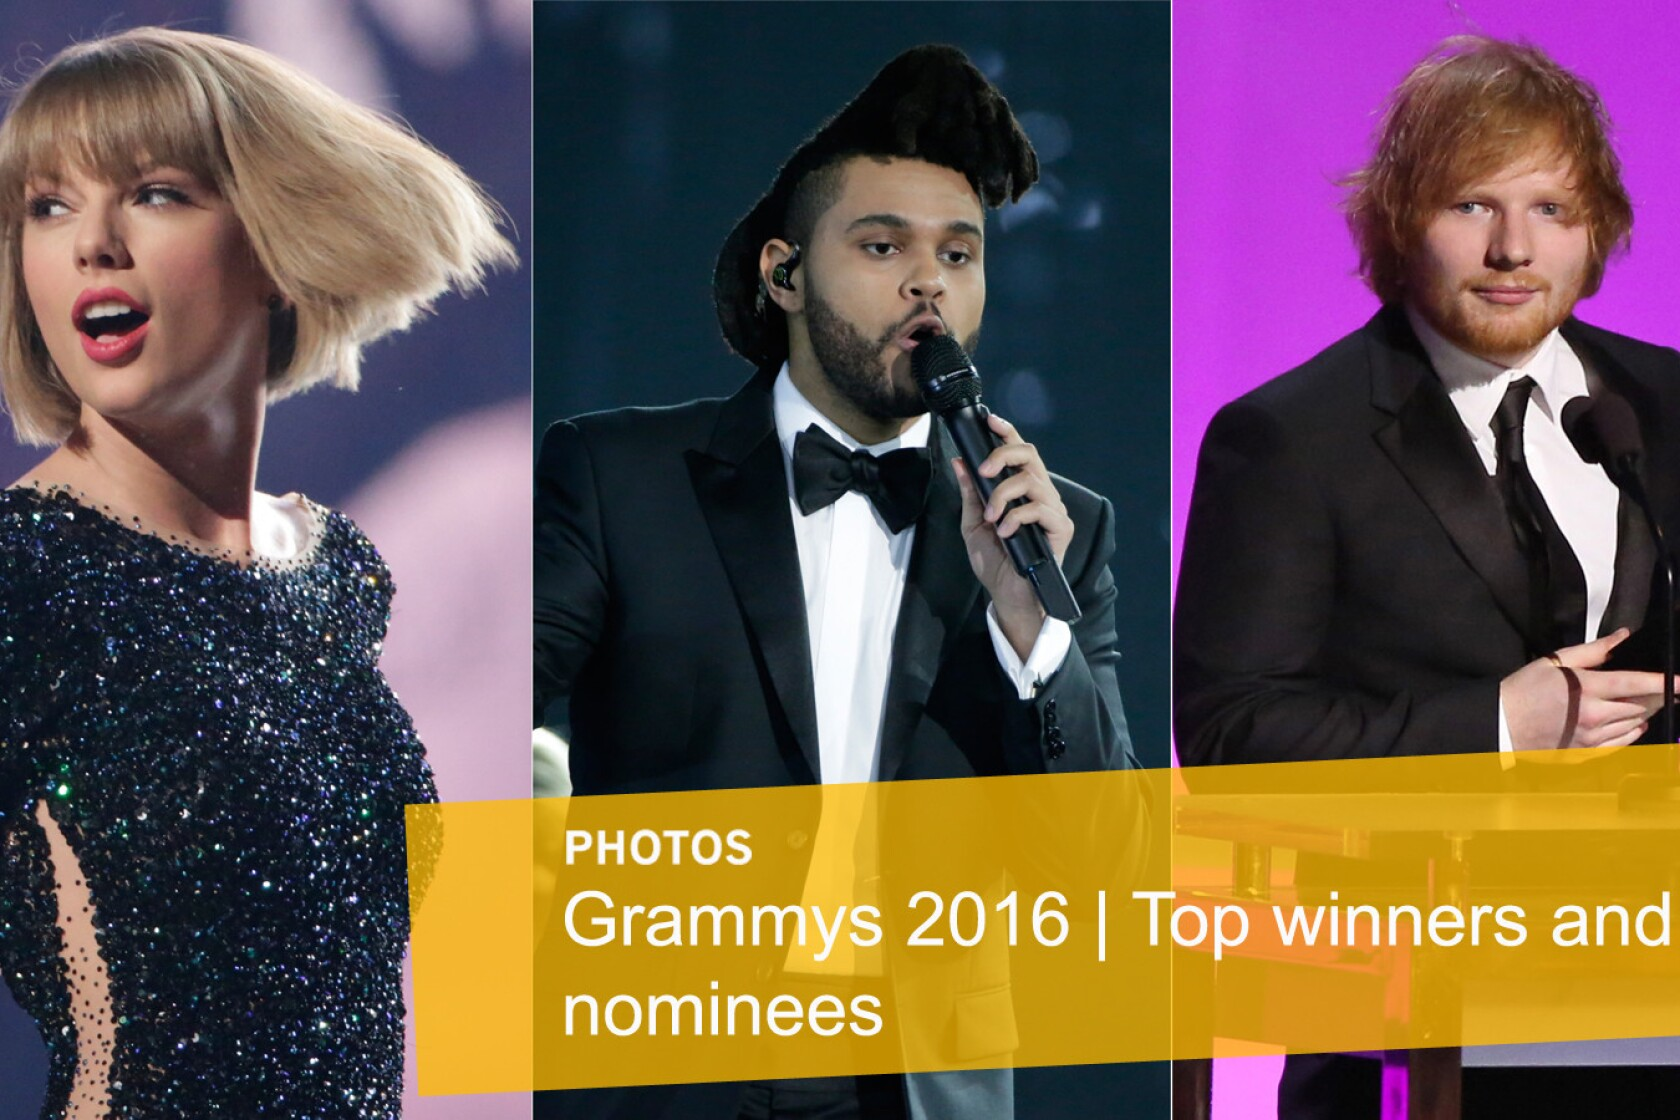 2016 Grammy Awards: Complete list of winners and nominees